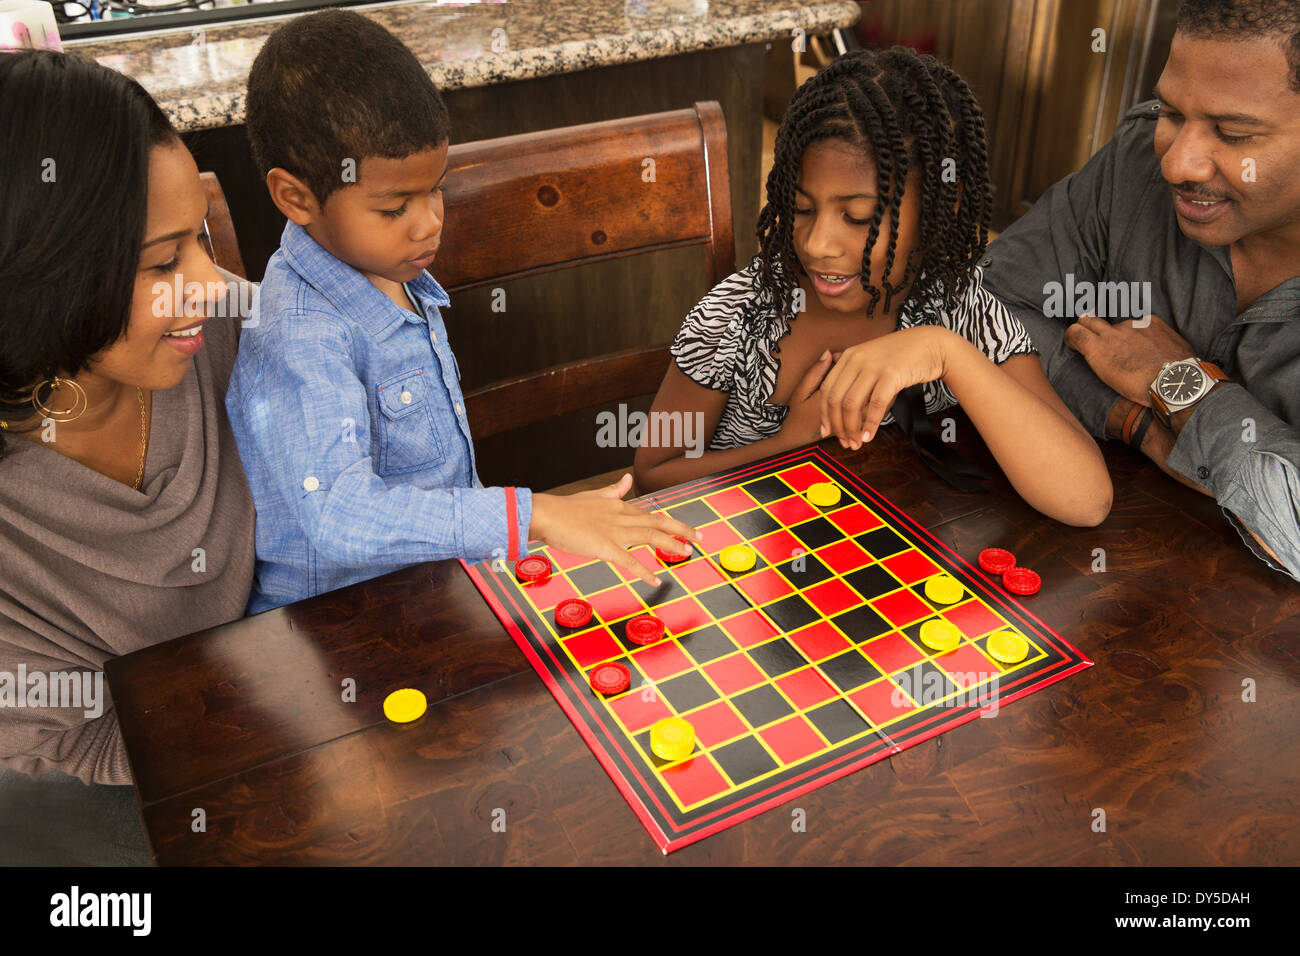 Mid adult couple and children playing draughts at dining table - Stock Image